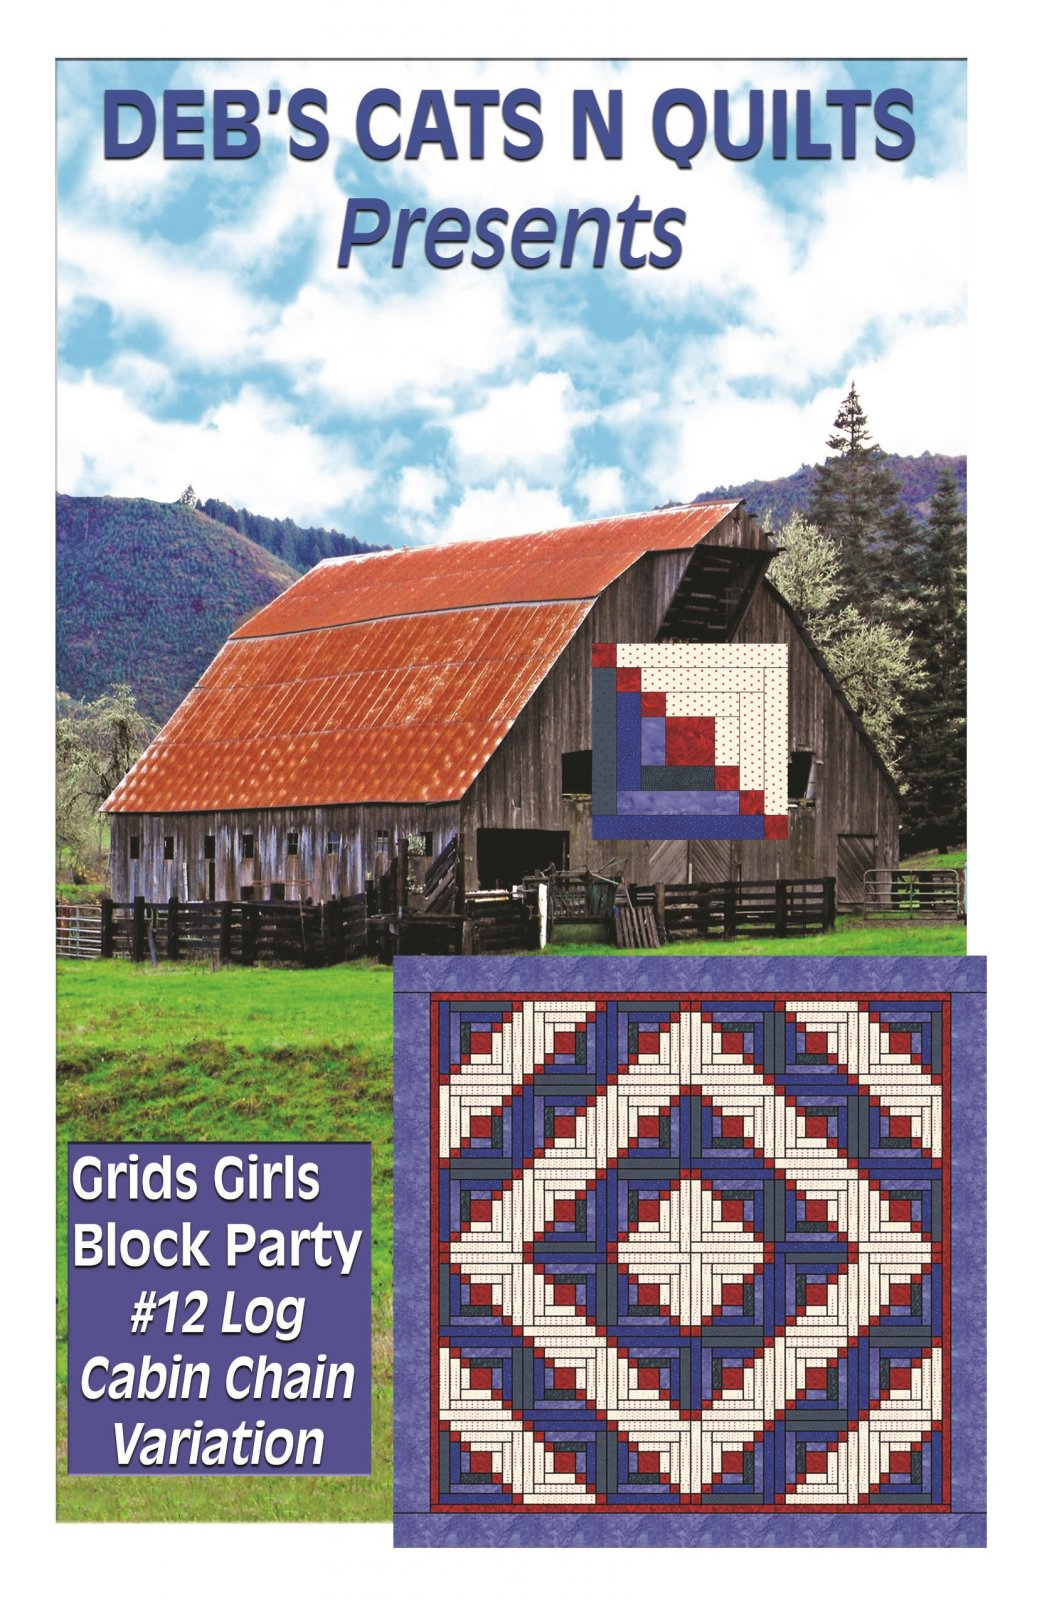 Log Cabin chain Variation- Grids Girls Block Party # 12